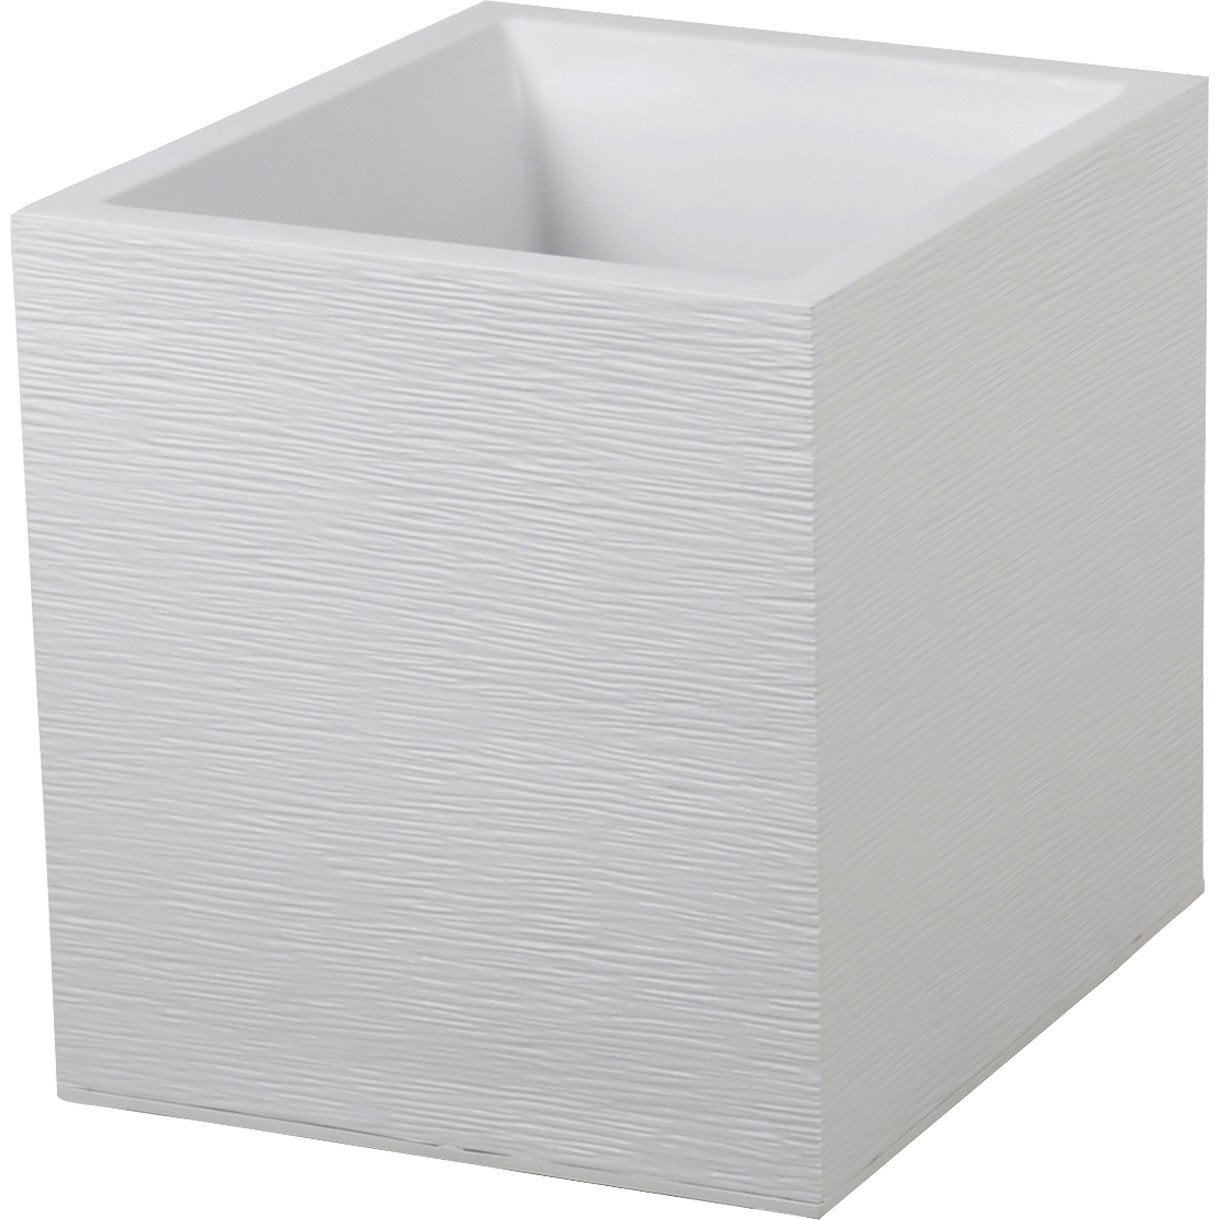 Pot plastique eda x x cm blanc c rus for Pot lumineux leroy merlin